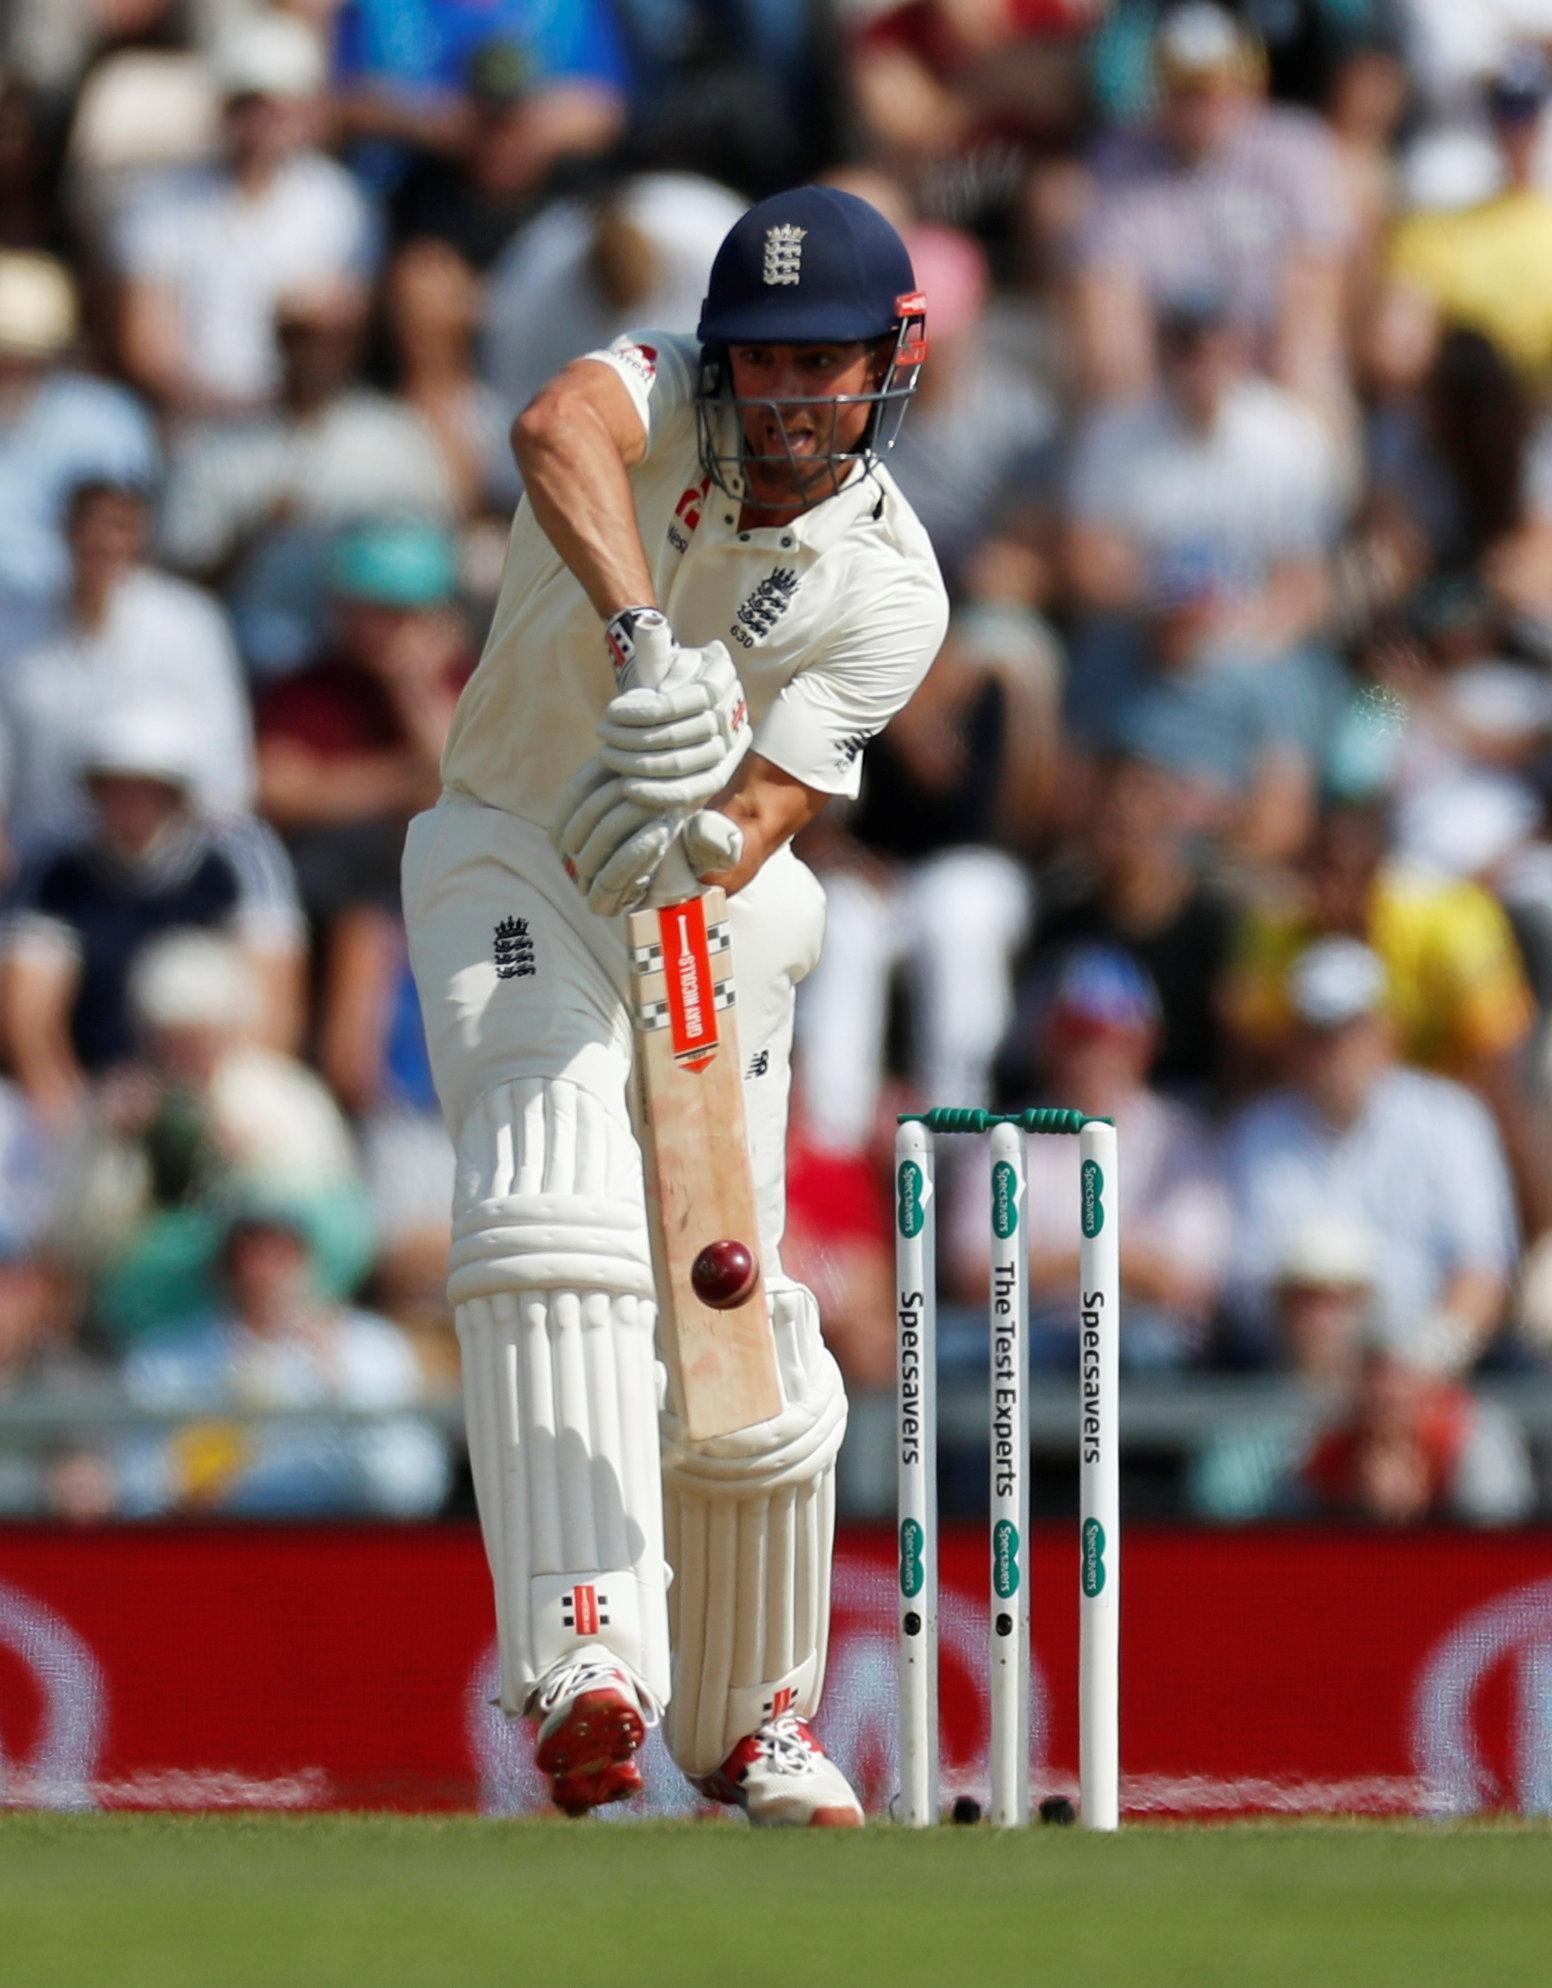 He has endured a rocky series against India this summer